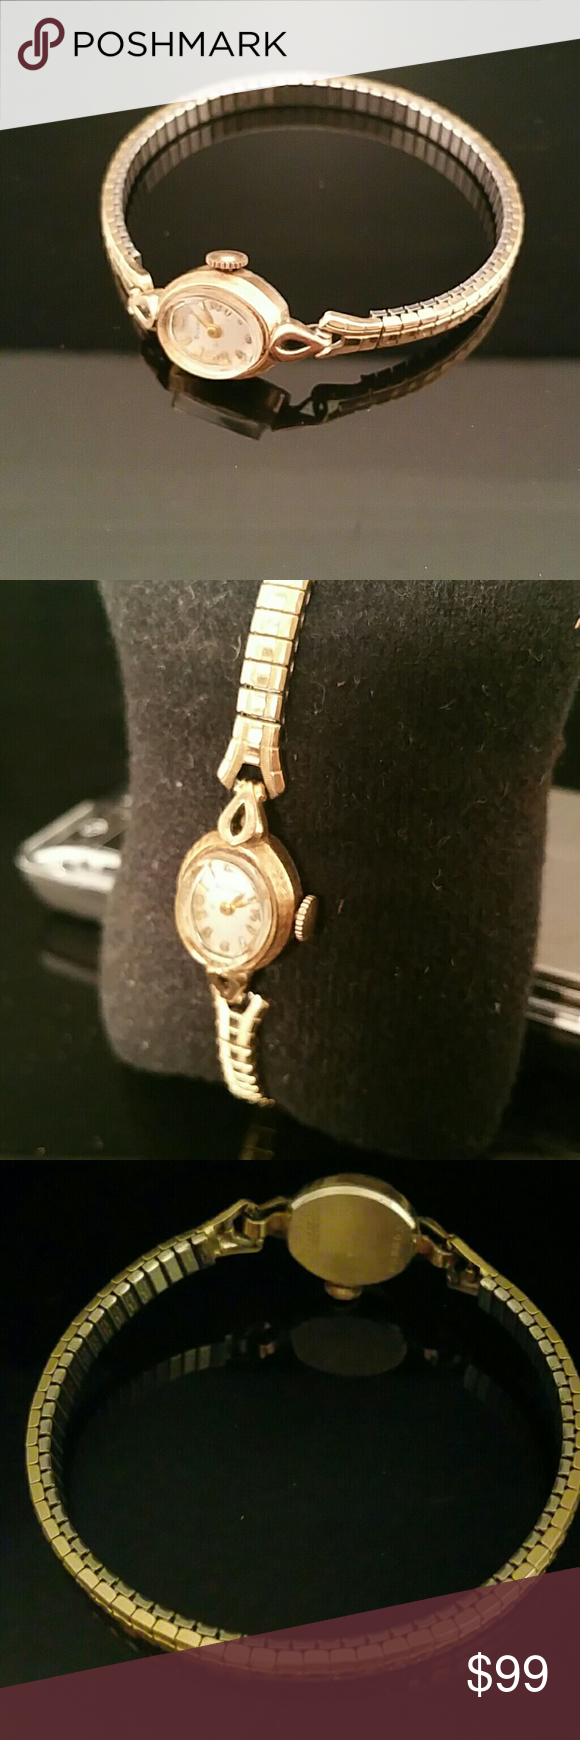 Vintage Women S Bulova 10k Gold Filled Wrist Watch Vintage Ladies 10k Gold Wrist Watch